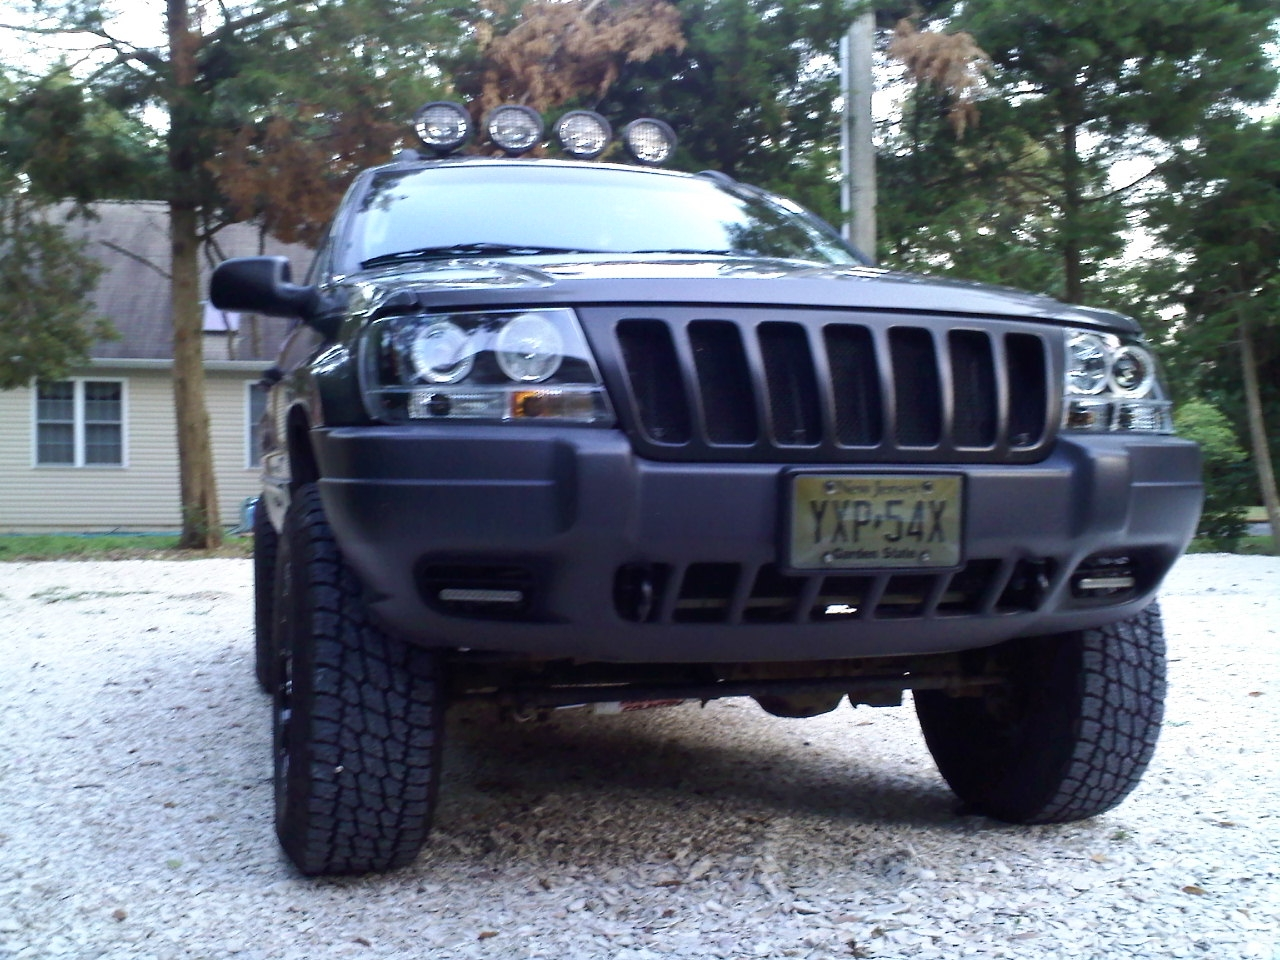 XII_FuZ1oN_IIx's 2003 Jeep Grand Cherokee